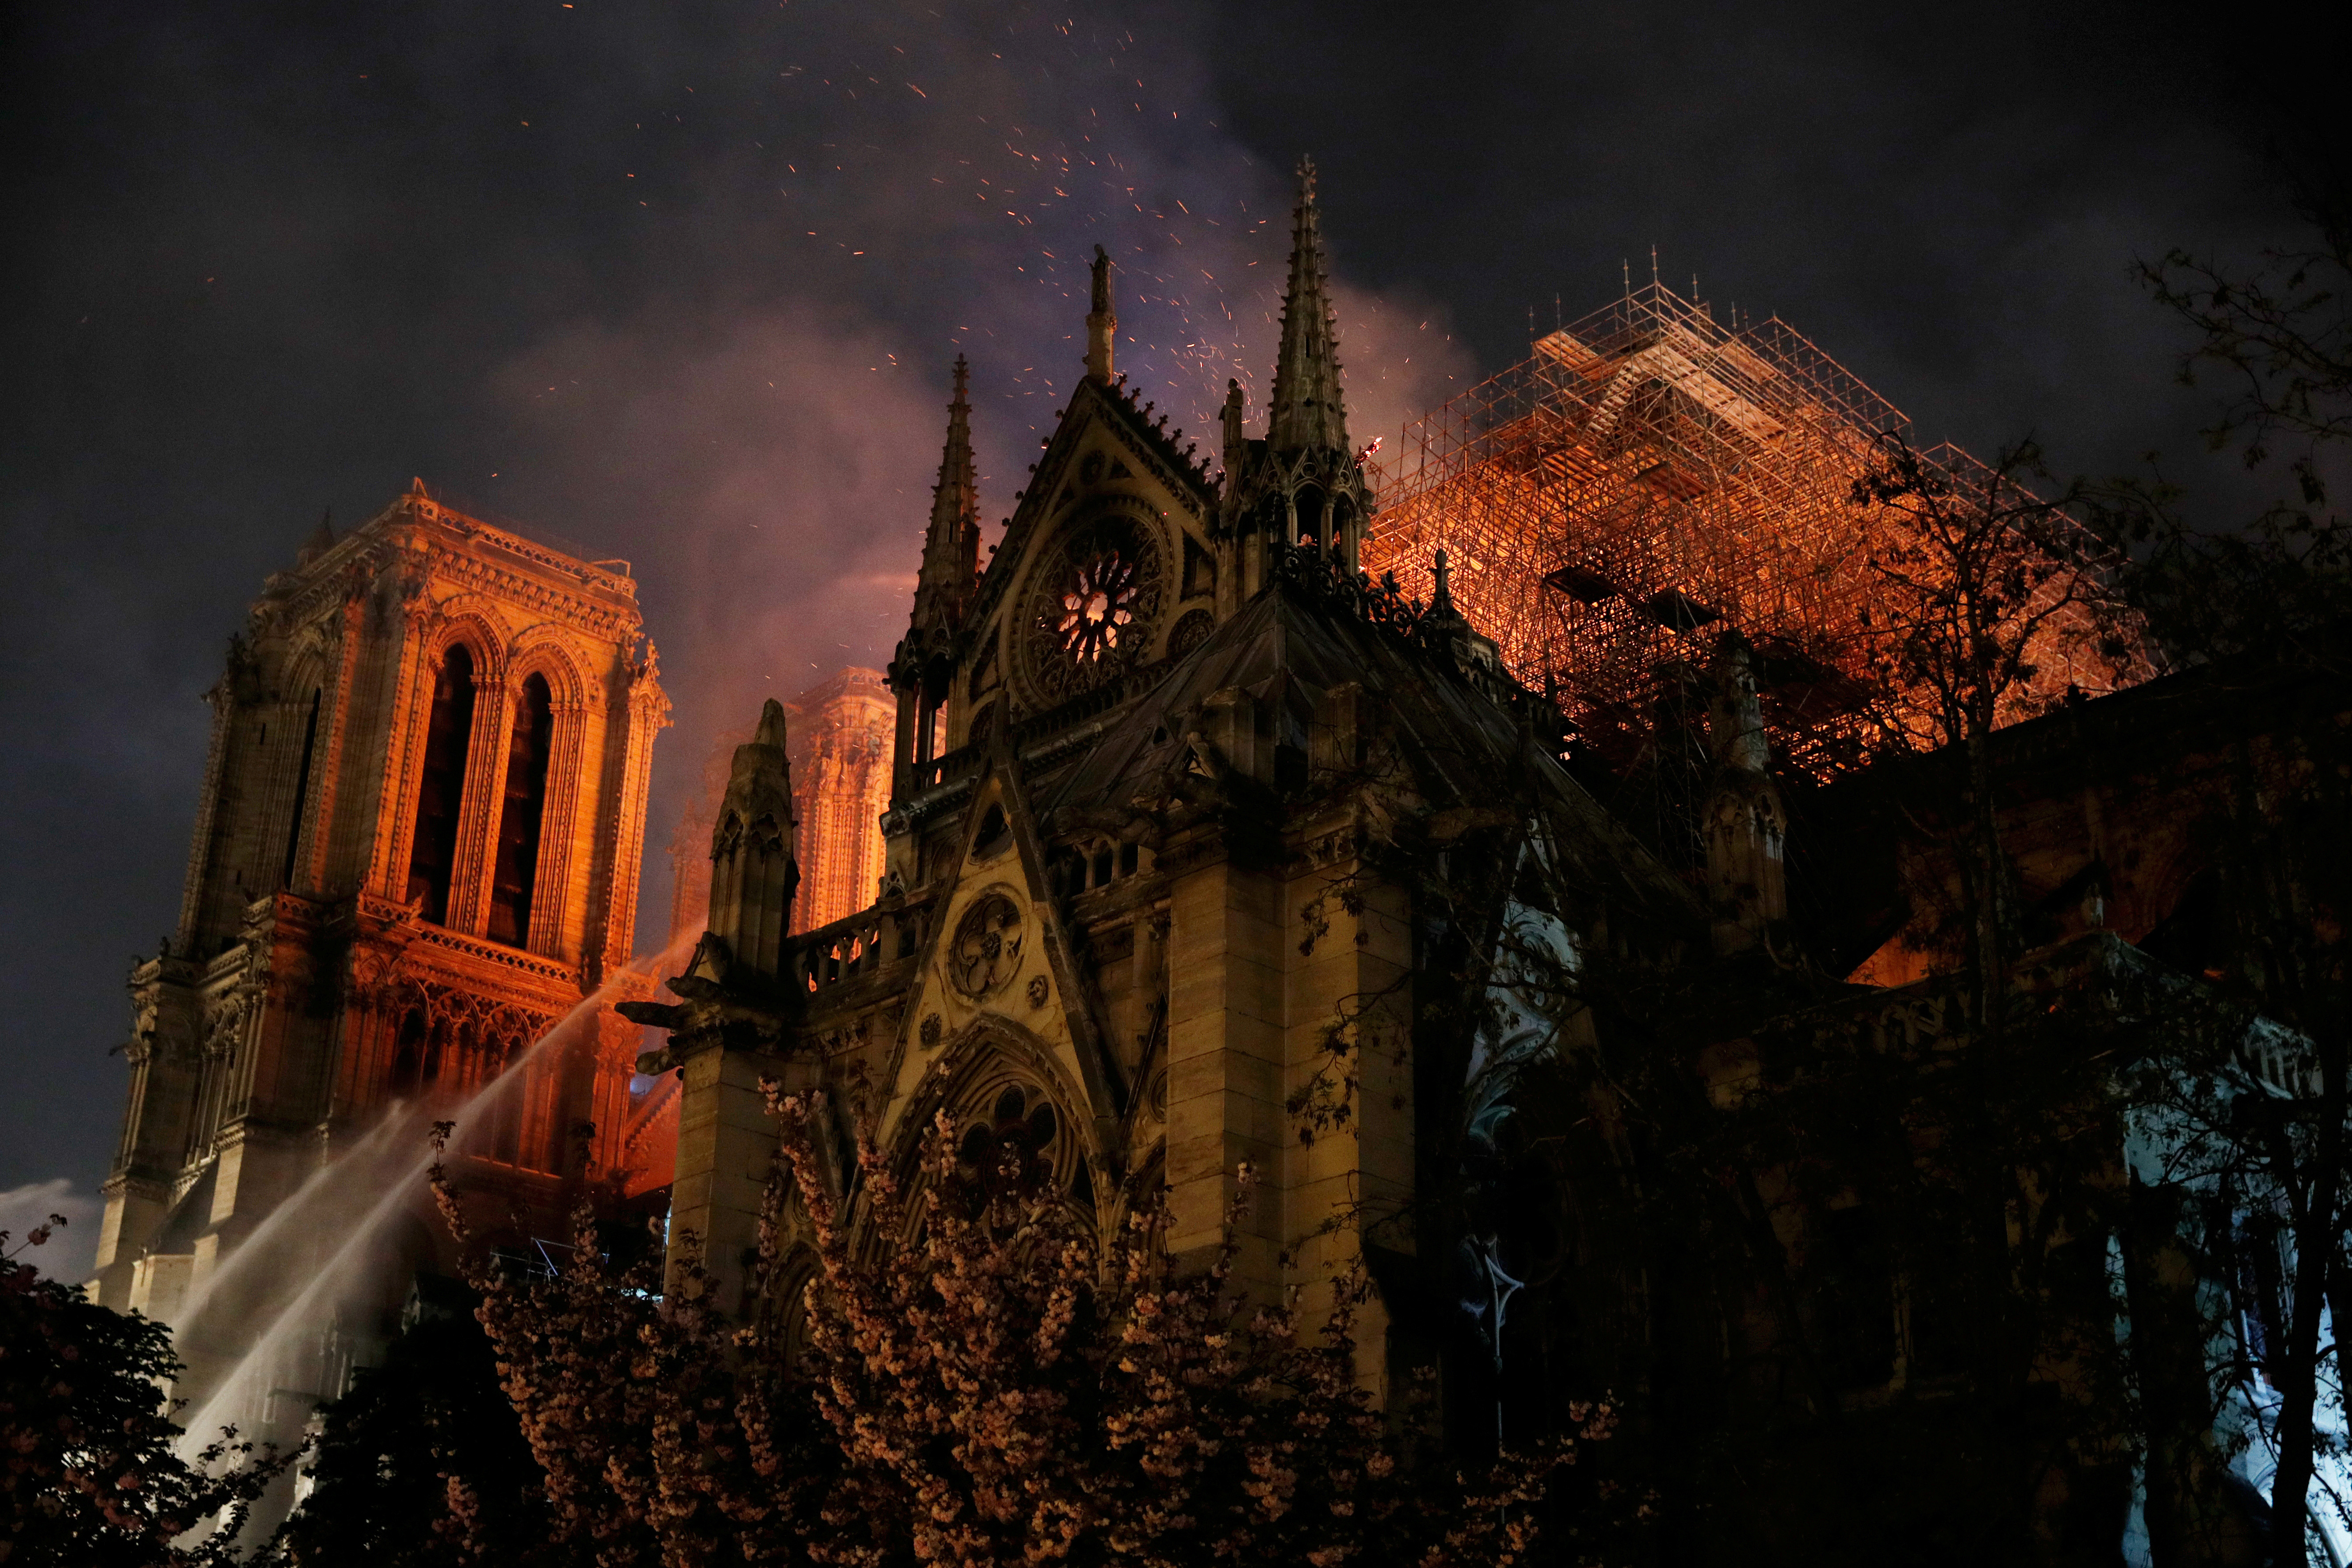 Sparks fill the air as Paris Fire brigade members spray water to extinguish flames as the Notre Dame Cathedral burns in Paris, France, April 15, 2019.   REUTERS/Philippe Wojazer      TPX IMAGES OF THE DAY - RC1FA7846930